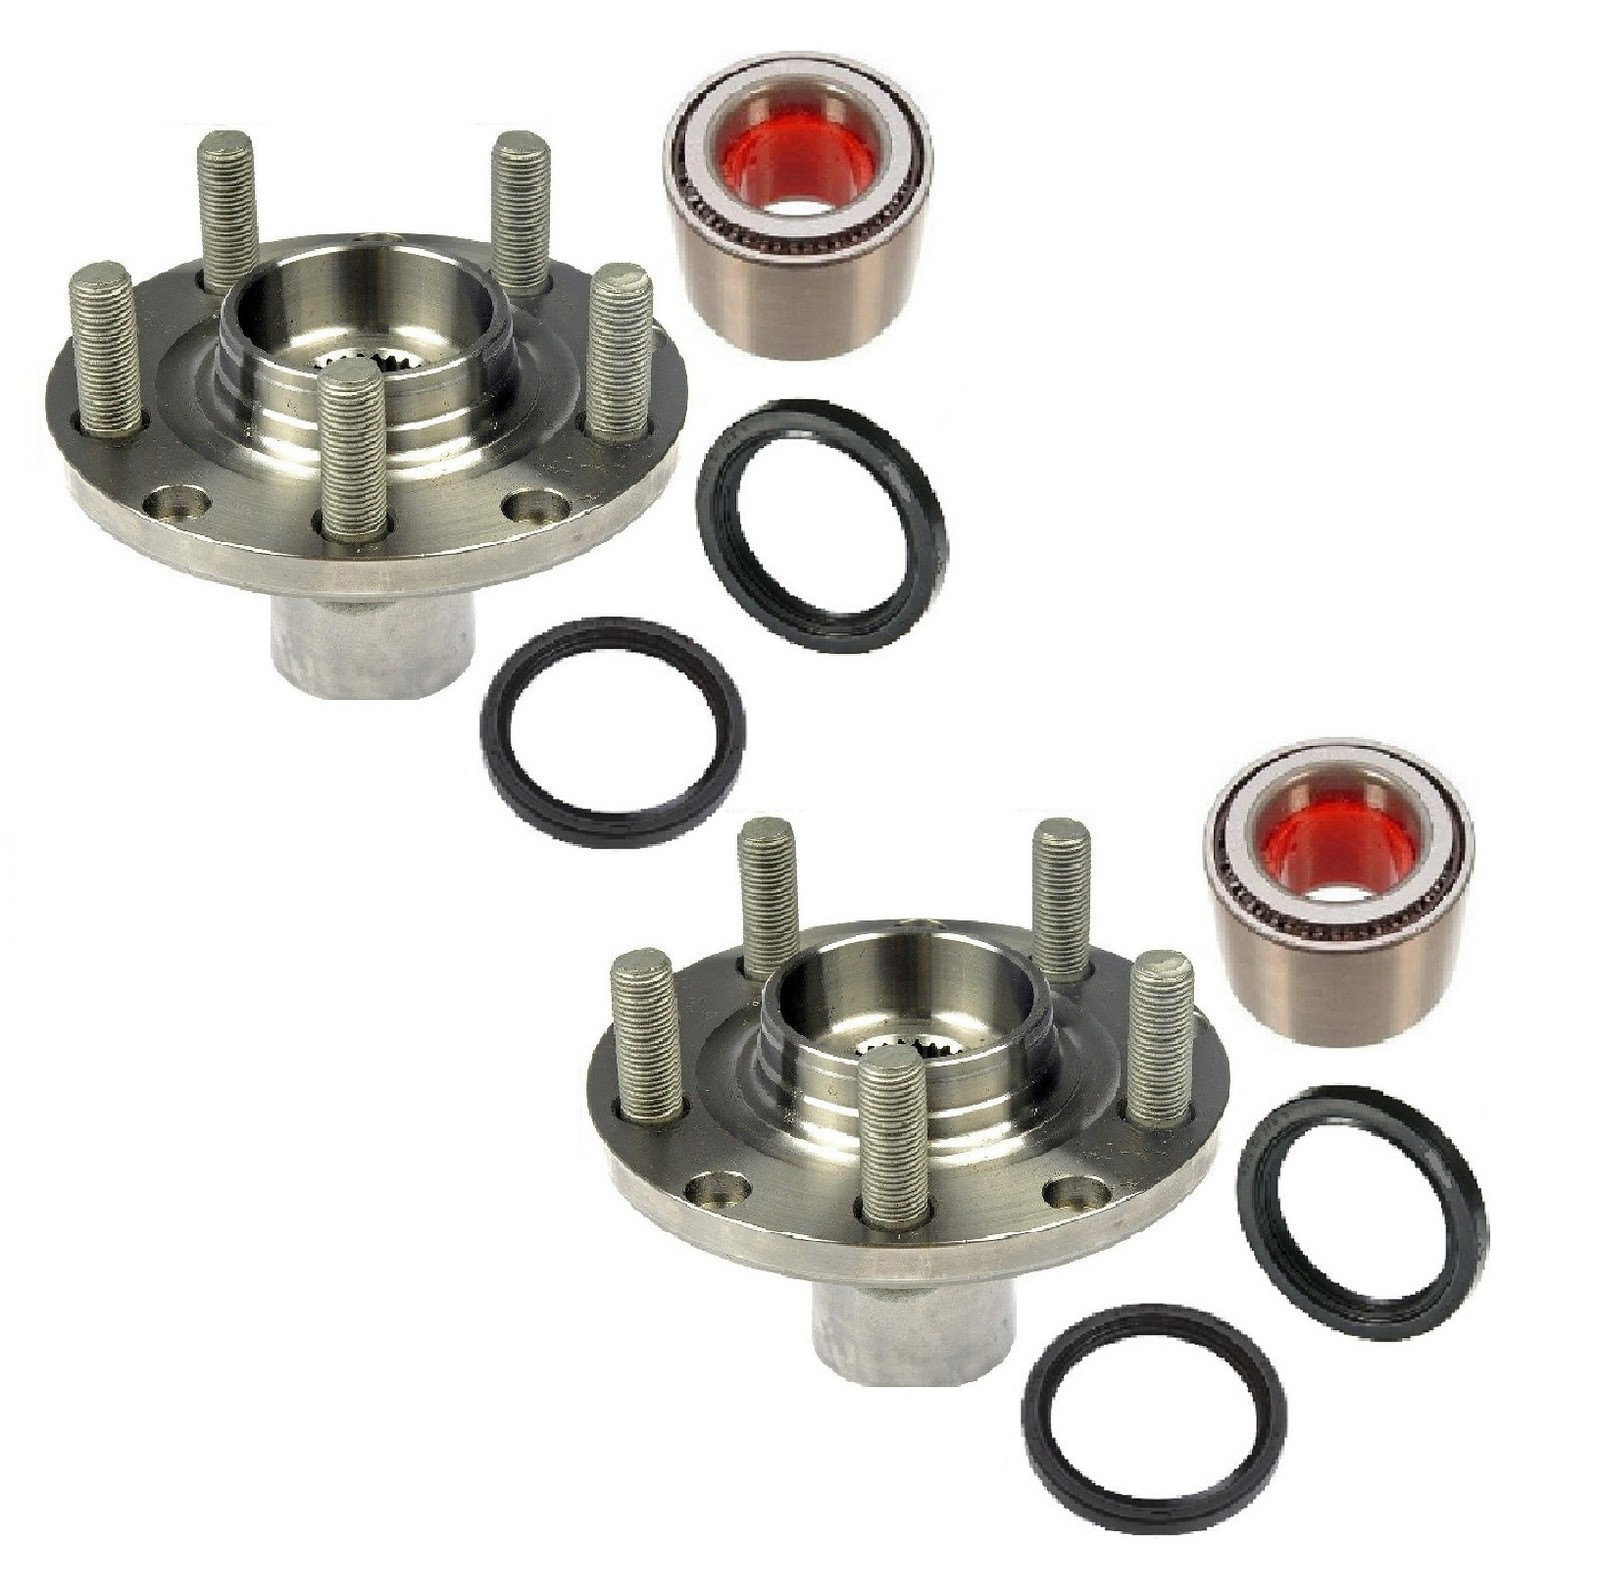 PAIR FRONT Left and Right Wheel Hub & (KOYO) Bearing with Seal fit 1998-2008 SUBARU FORESTER (for ABS model only) by 8USAUTO (Image #1)